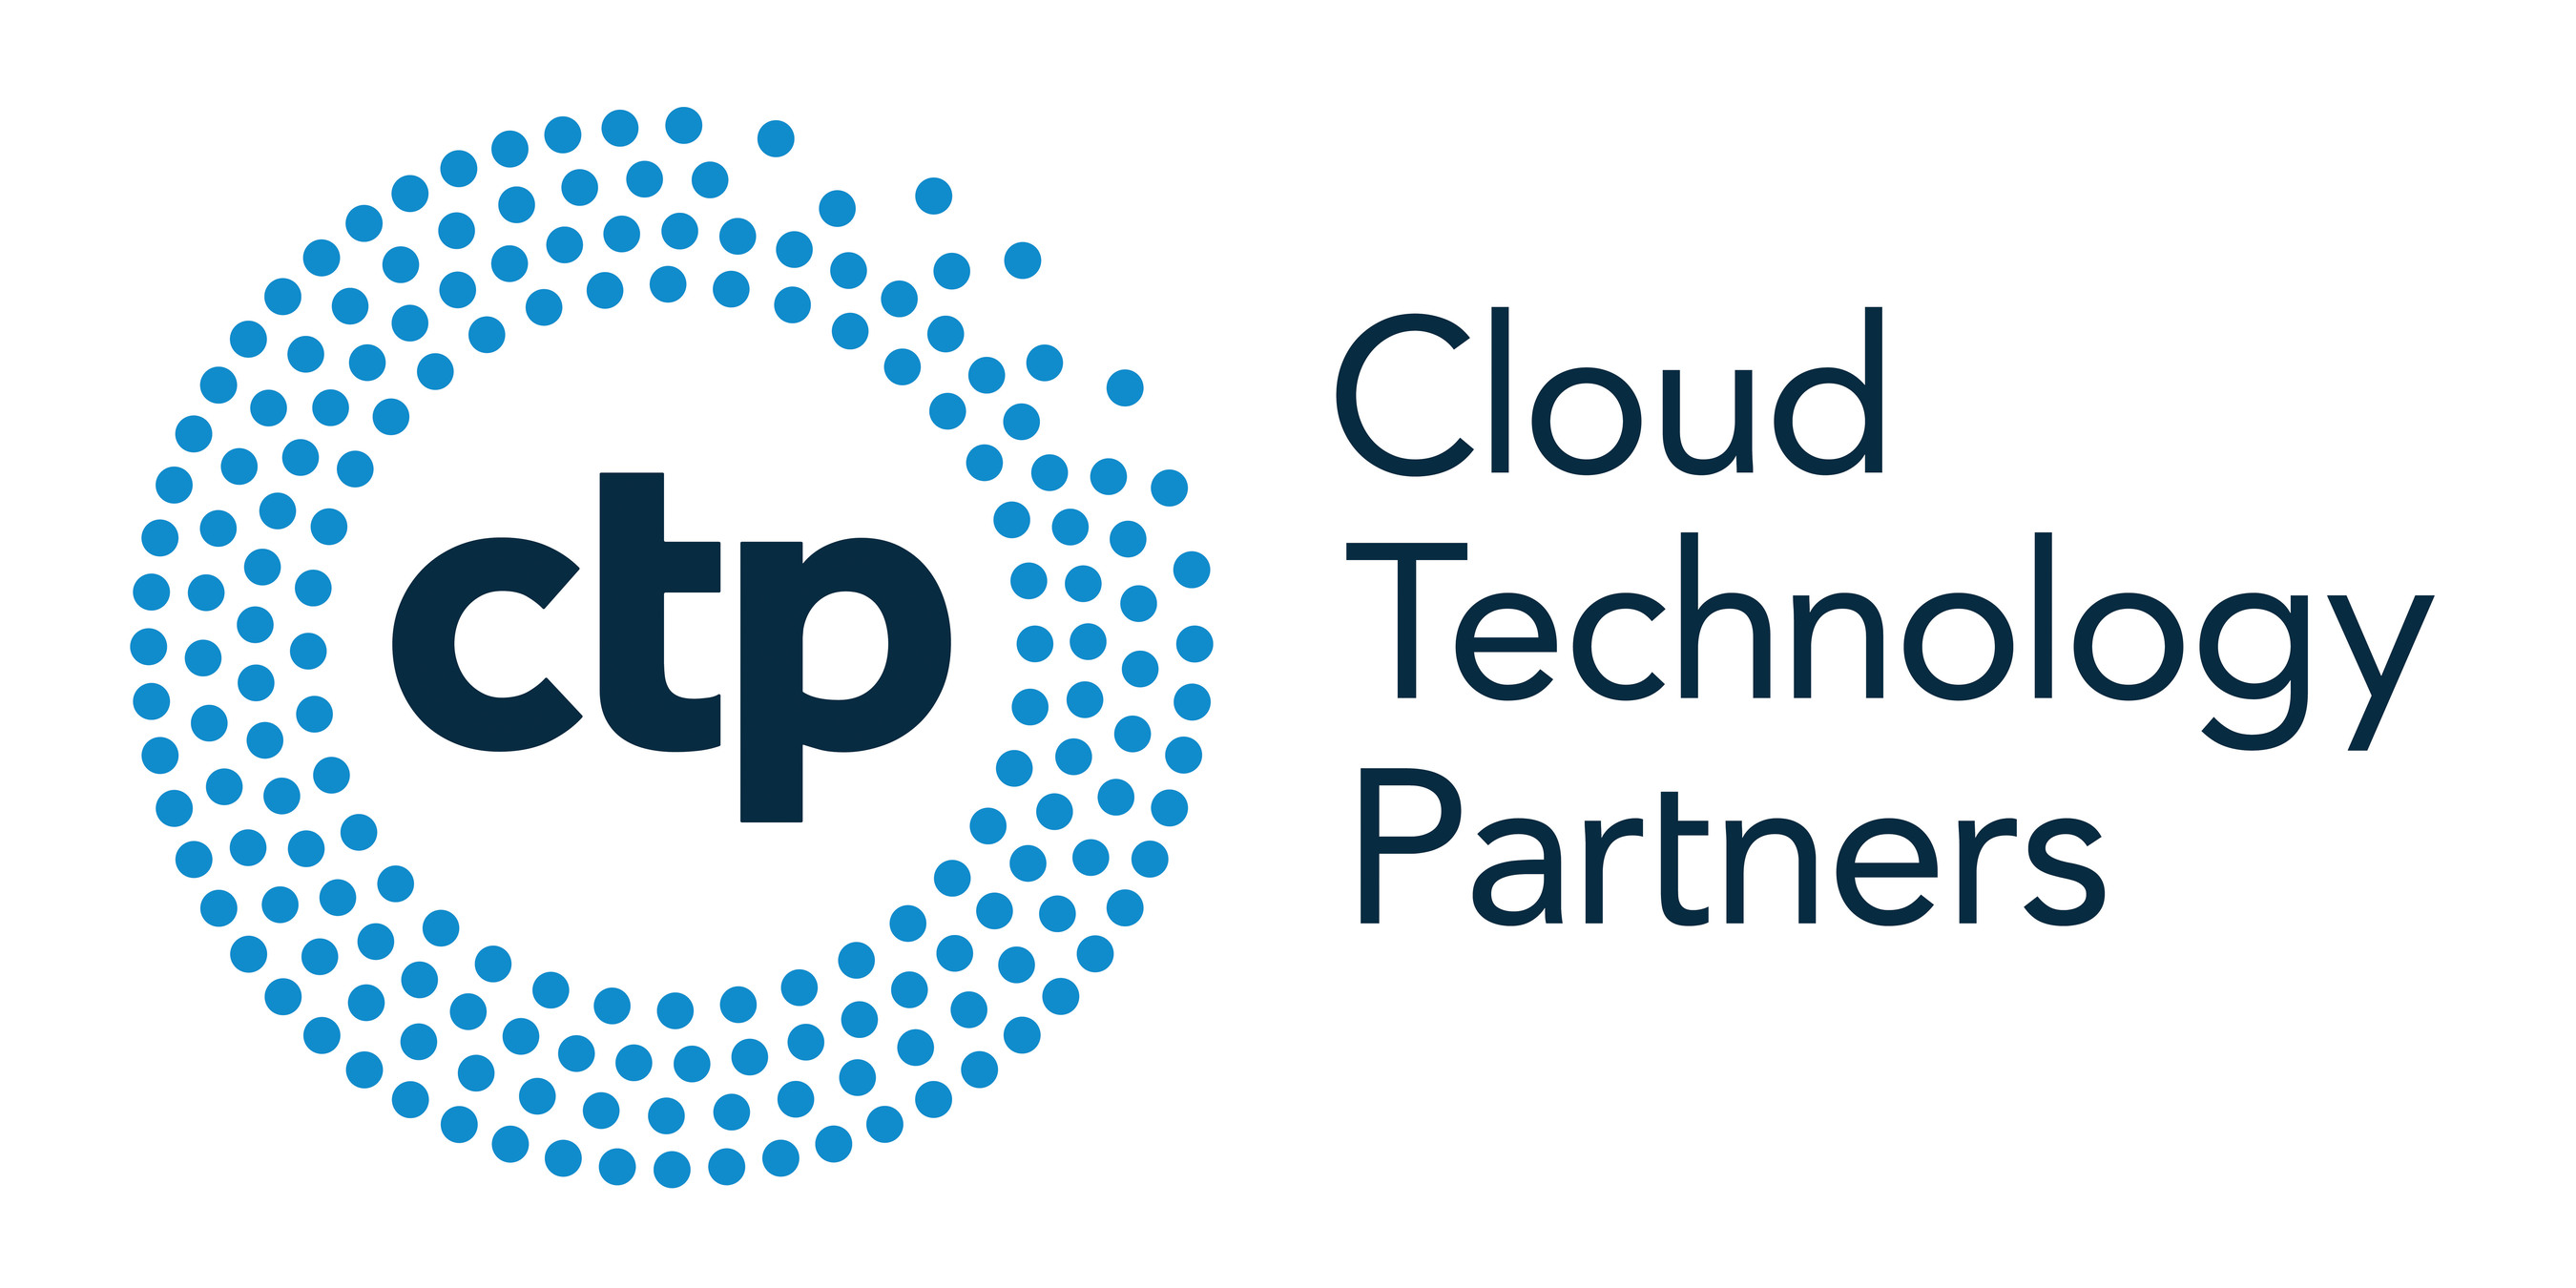 Cloud Technology Partners Raises $3.5M in Top-Up B-1 Round; Pritzker Group and Oak Investment Partners Lead